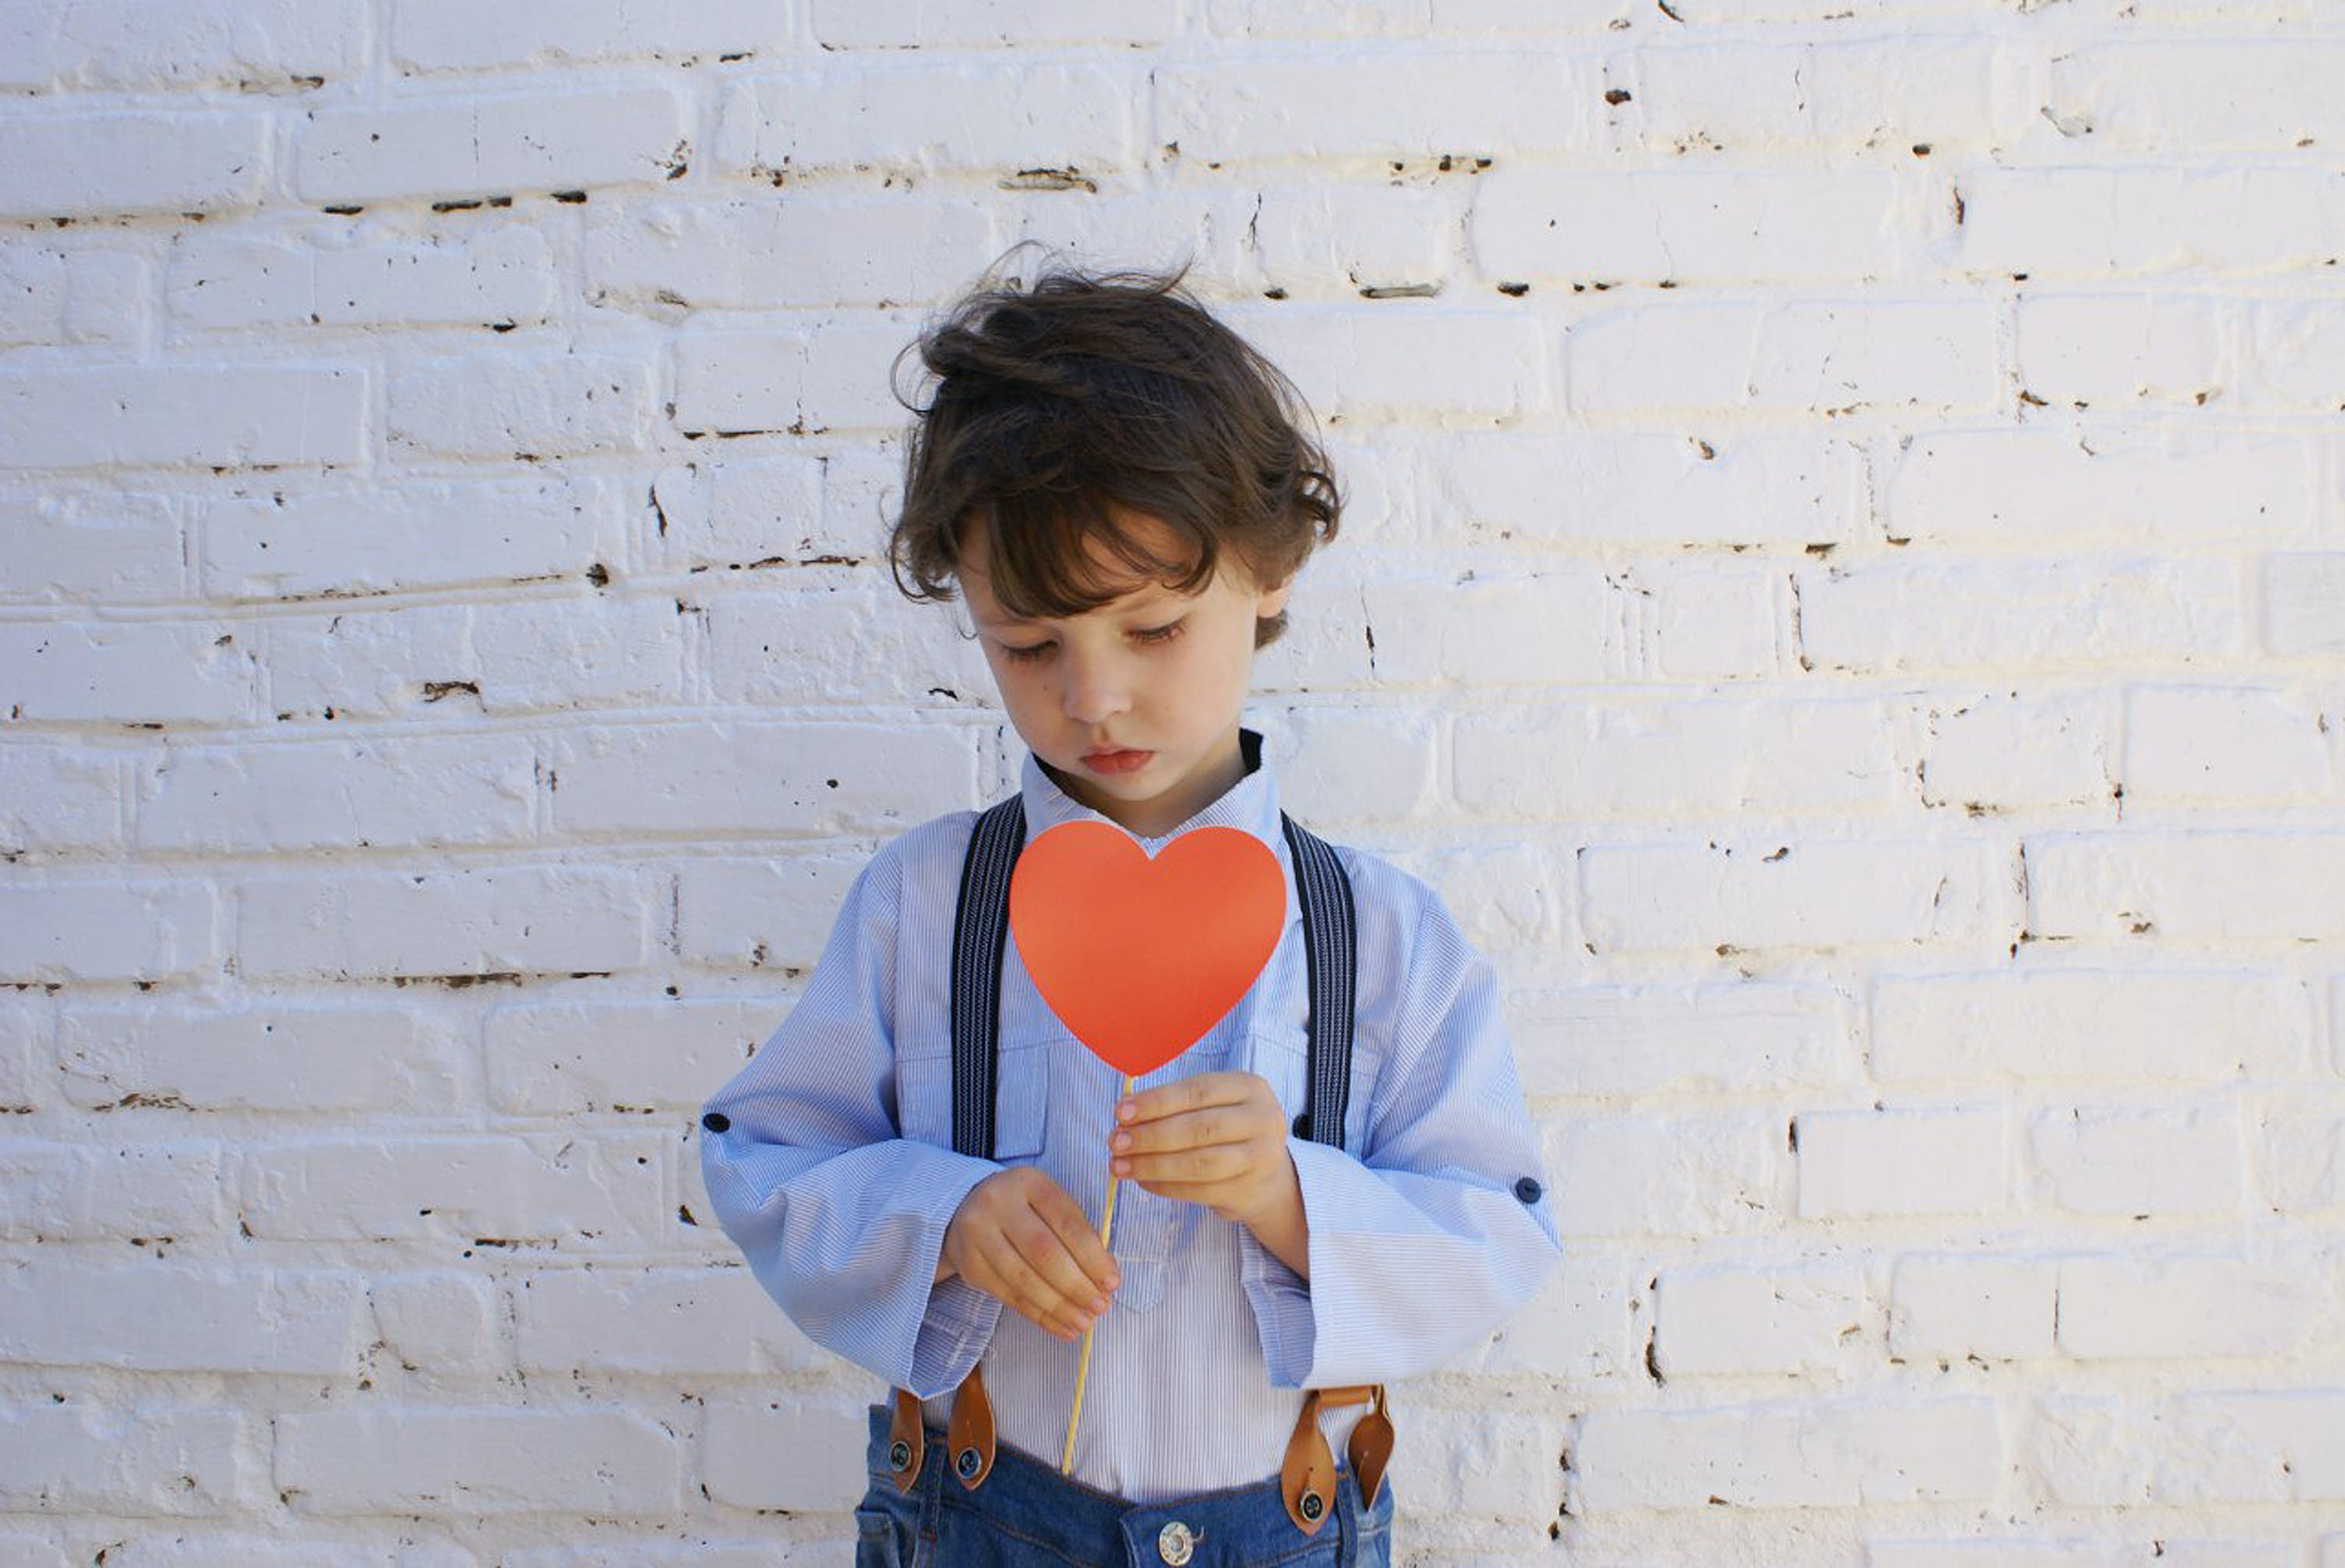 Photo of Boy Holding Heart-shape Paper on Stick